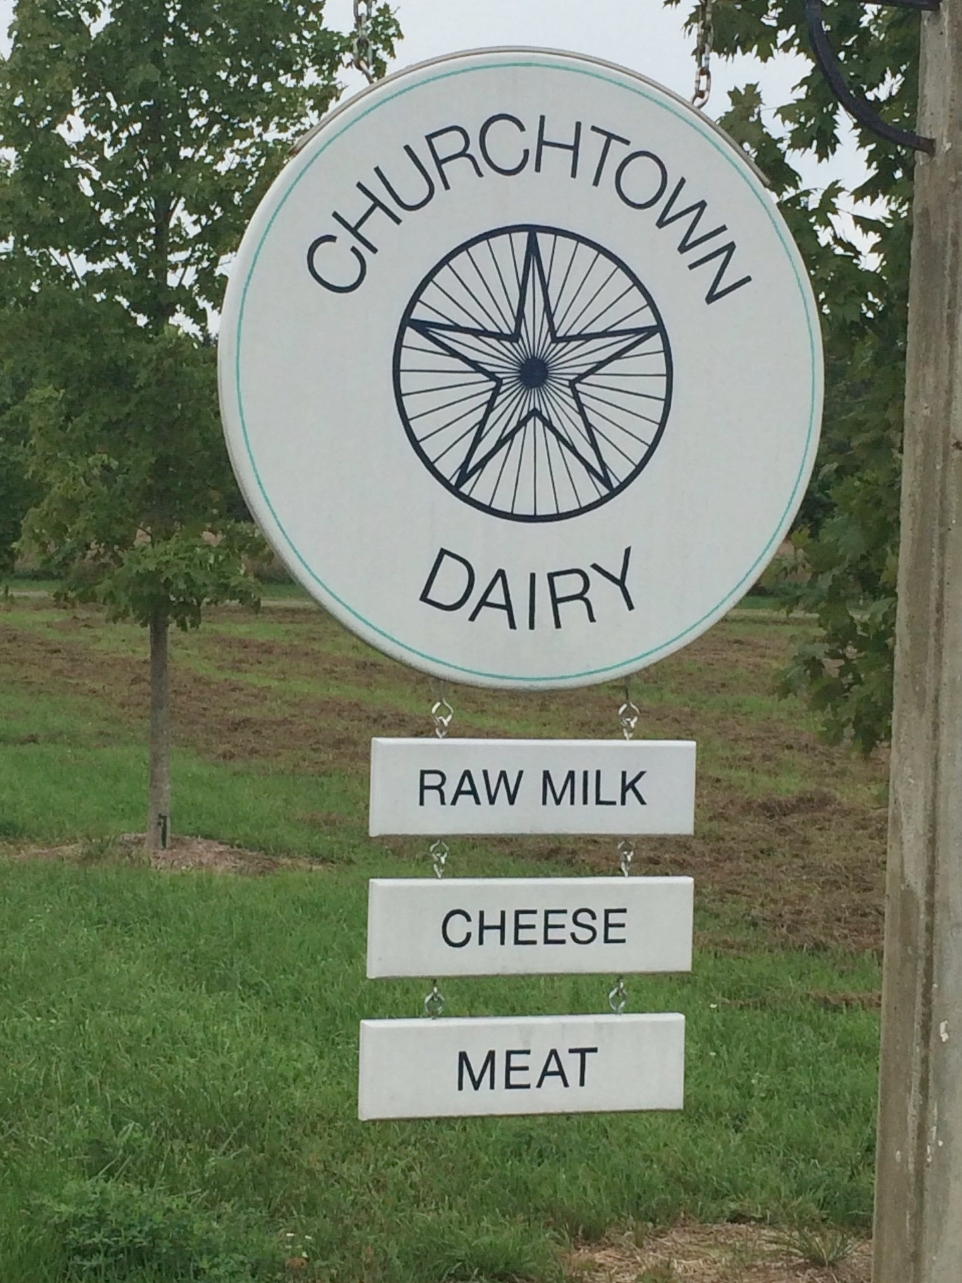 churchtown dairy via peg.jpeg